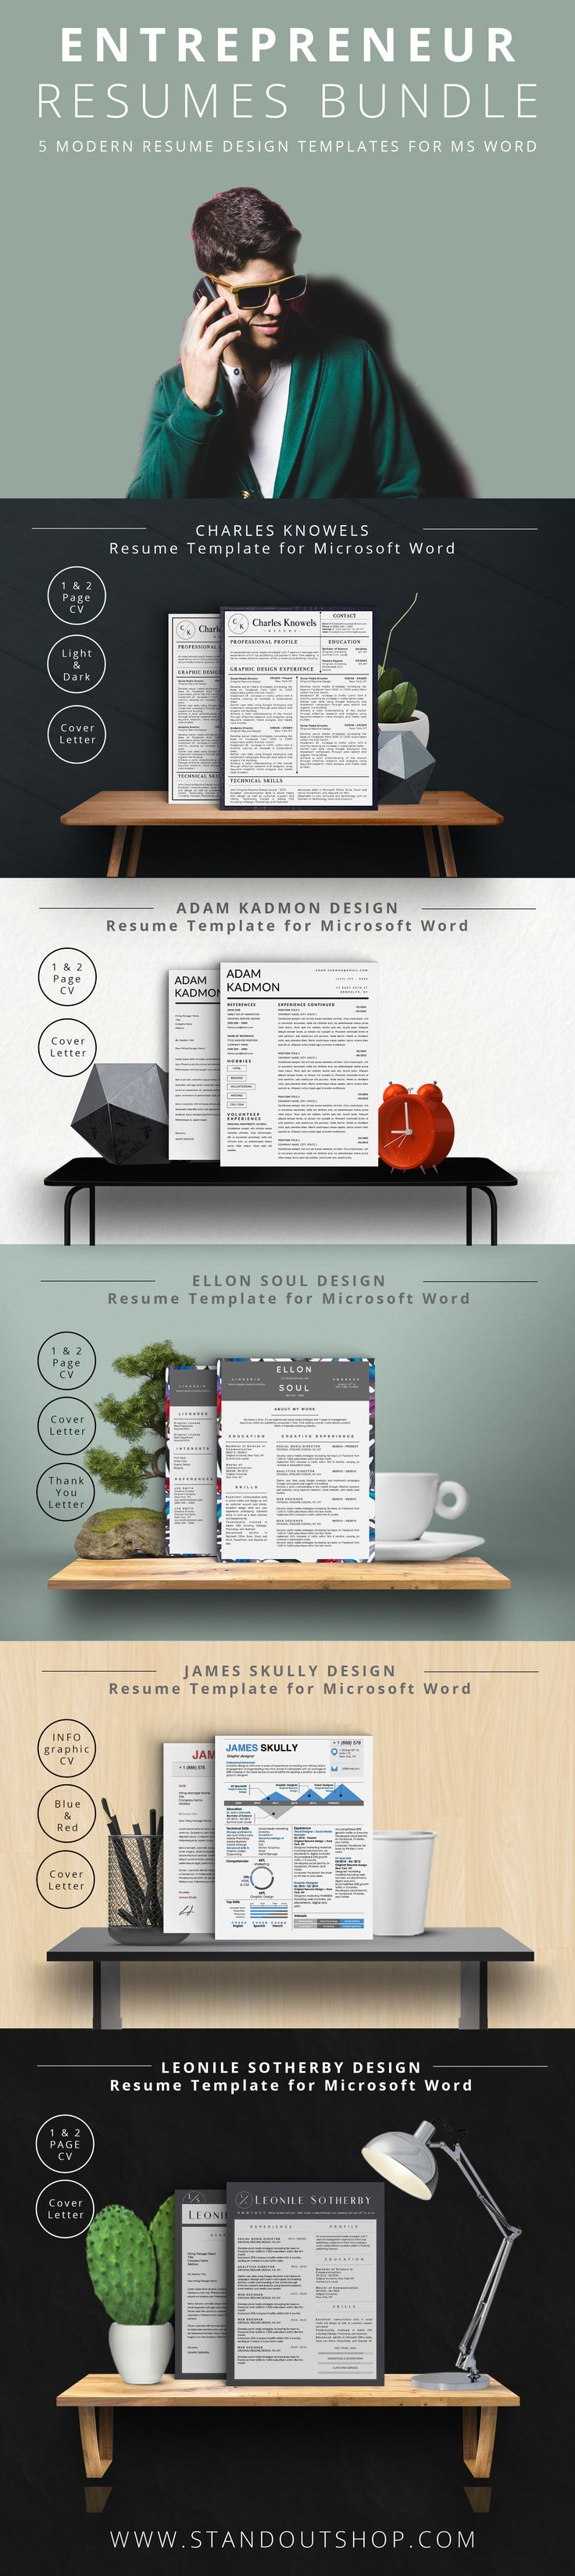 Templates For Resumes Word Awesome Entrepreneur Resume Collection For Microsoft Worddownload 5 Modern .